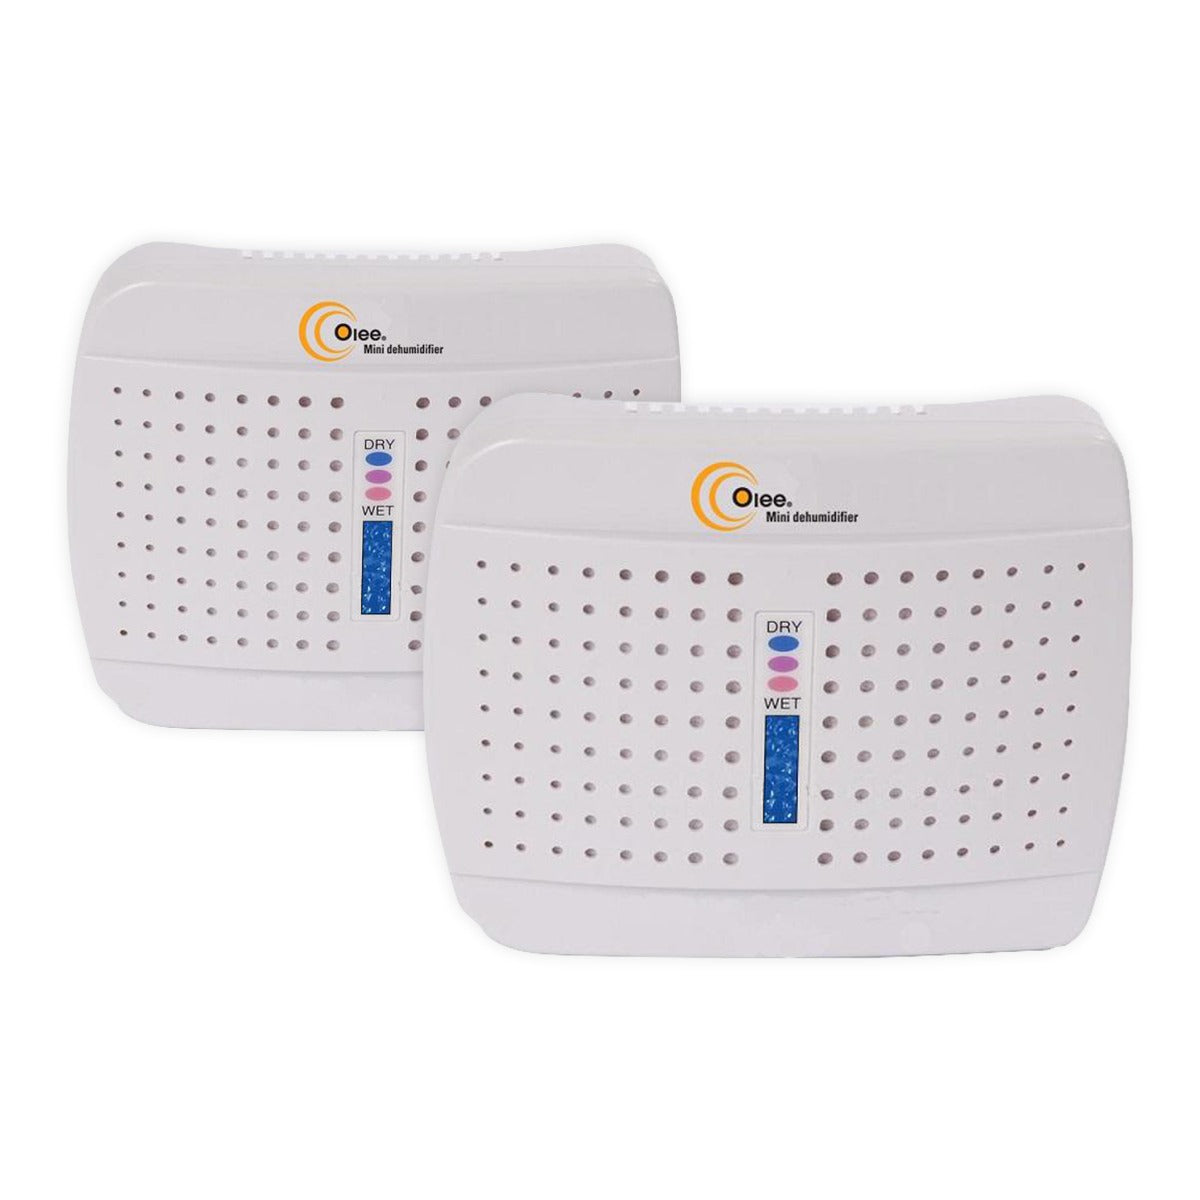 2 PACK - Olee Reusable Dehumidifiers